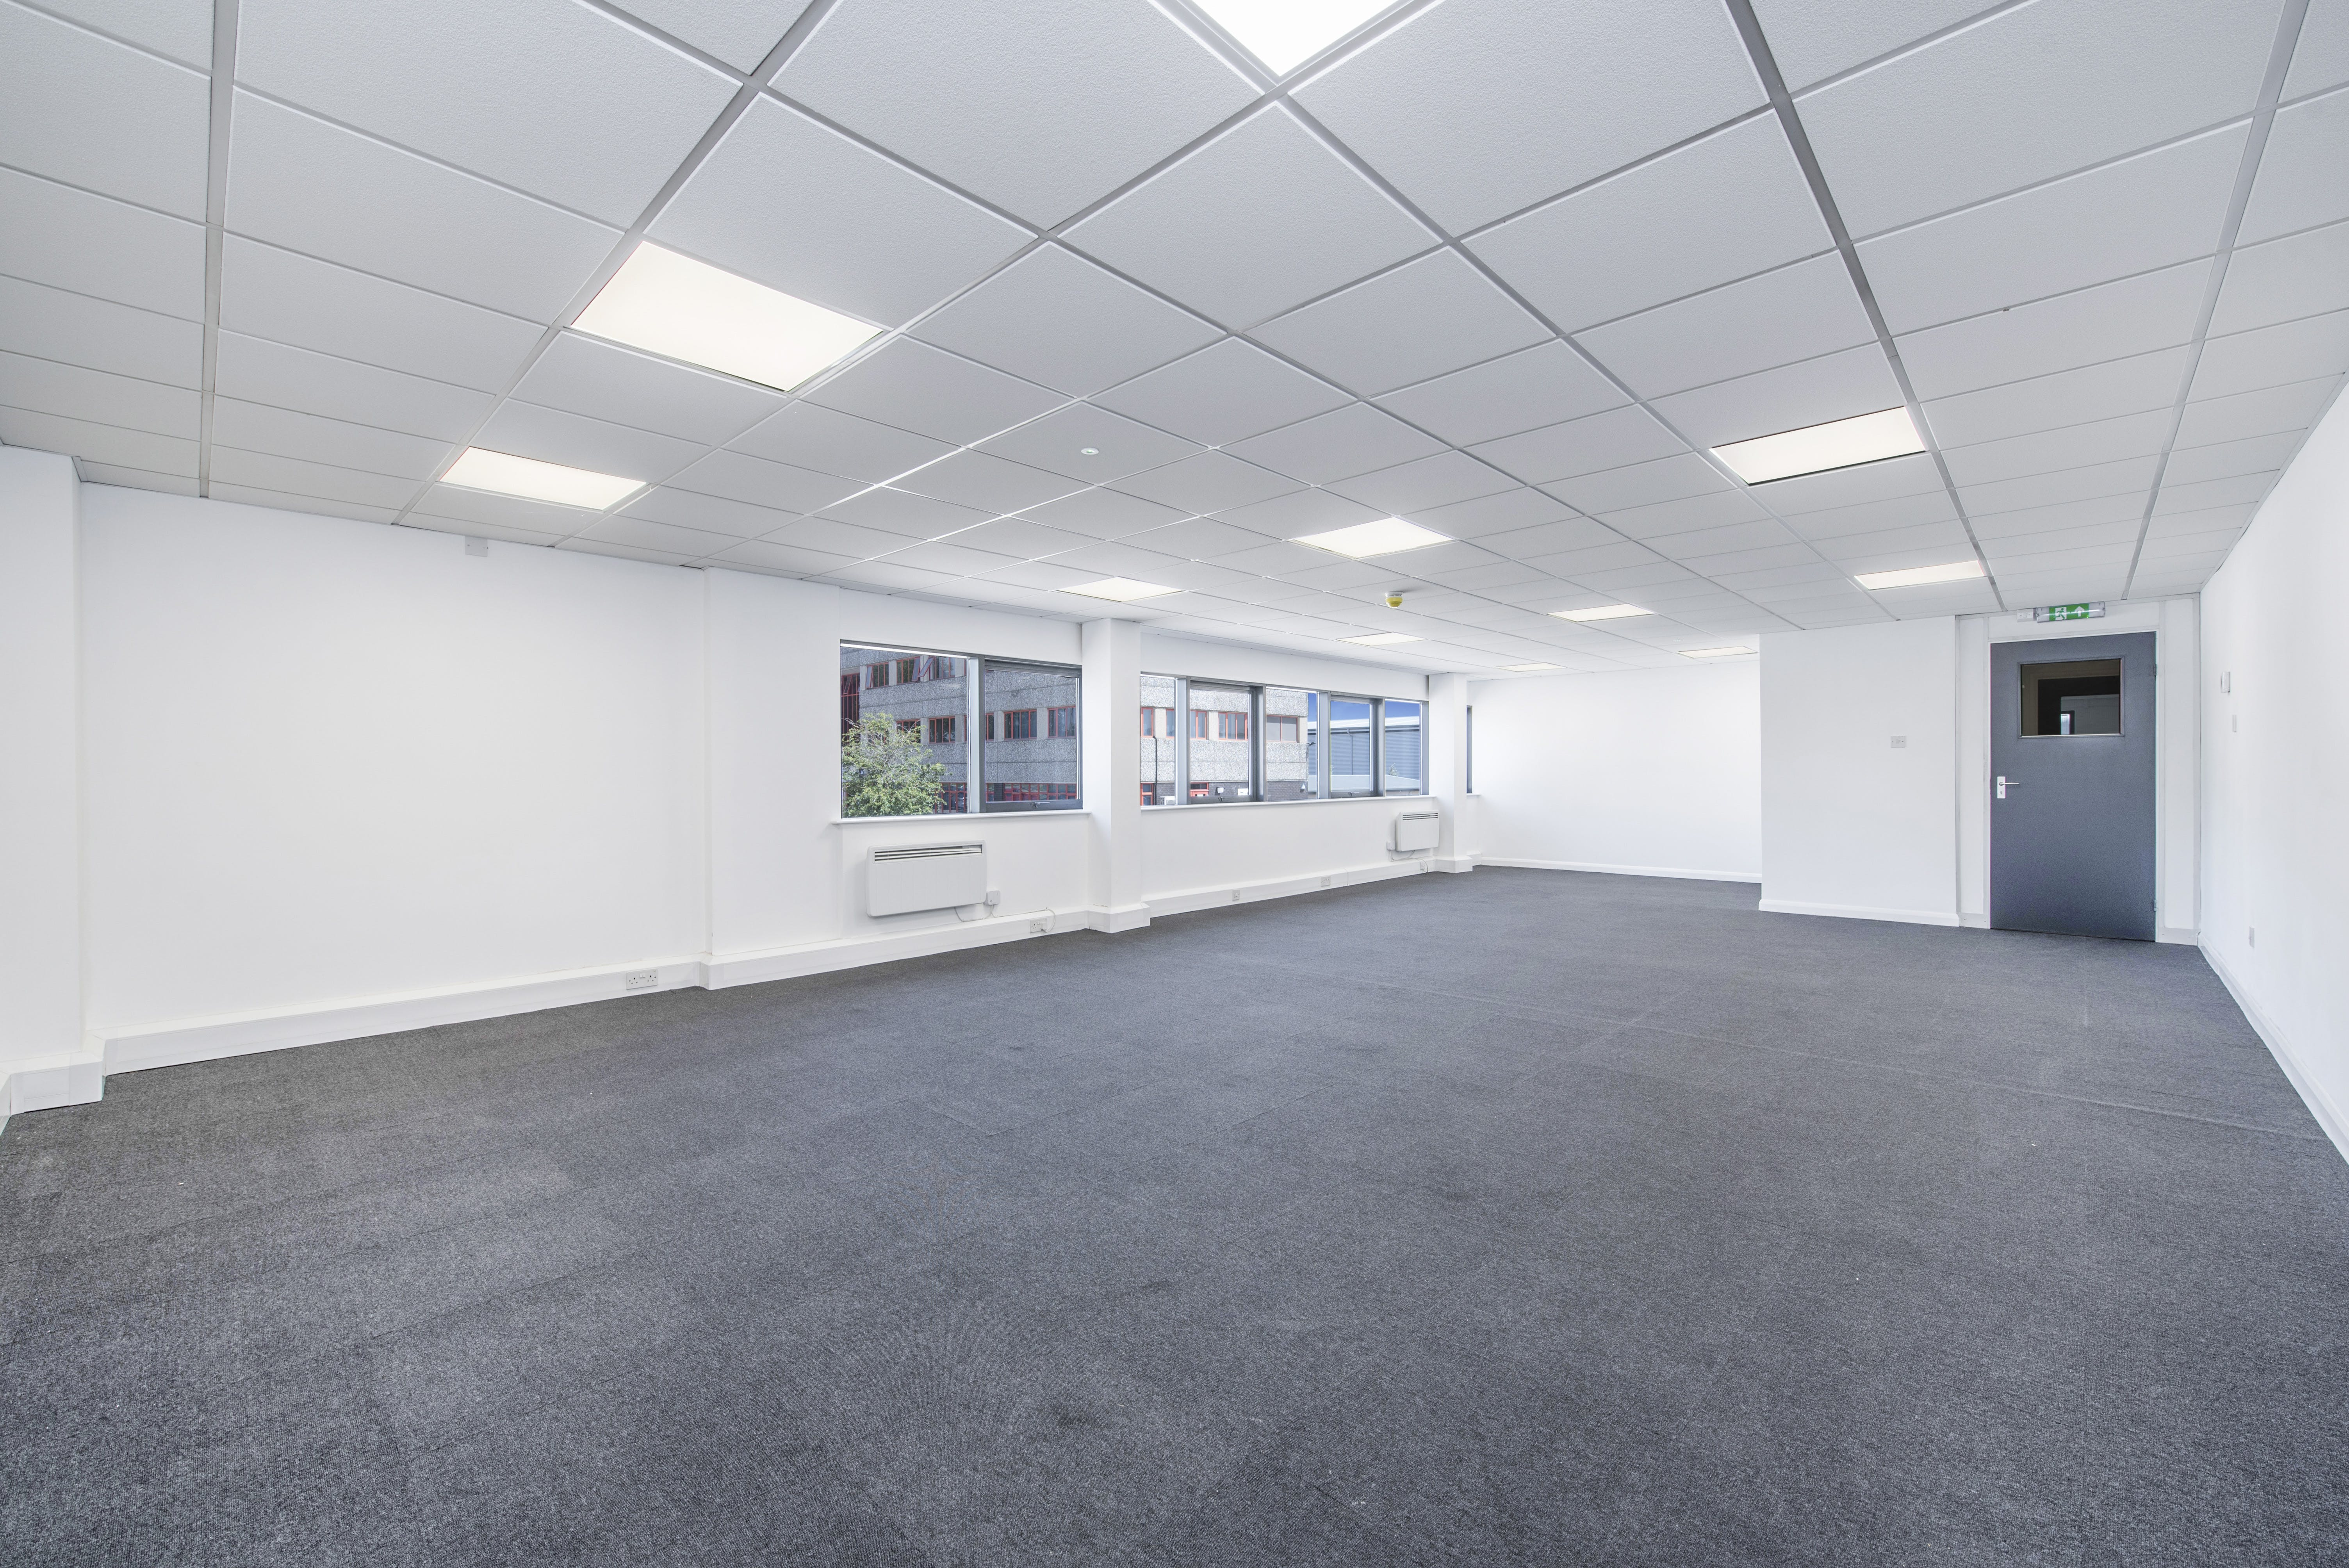 14 Meadow View, Long Crendon, Office / Industrial To Let - F-6.jpg